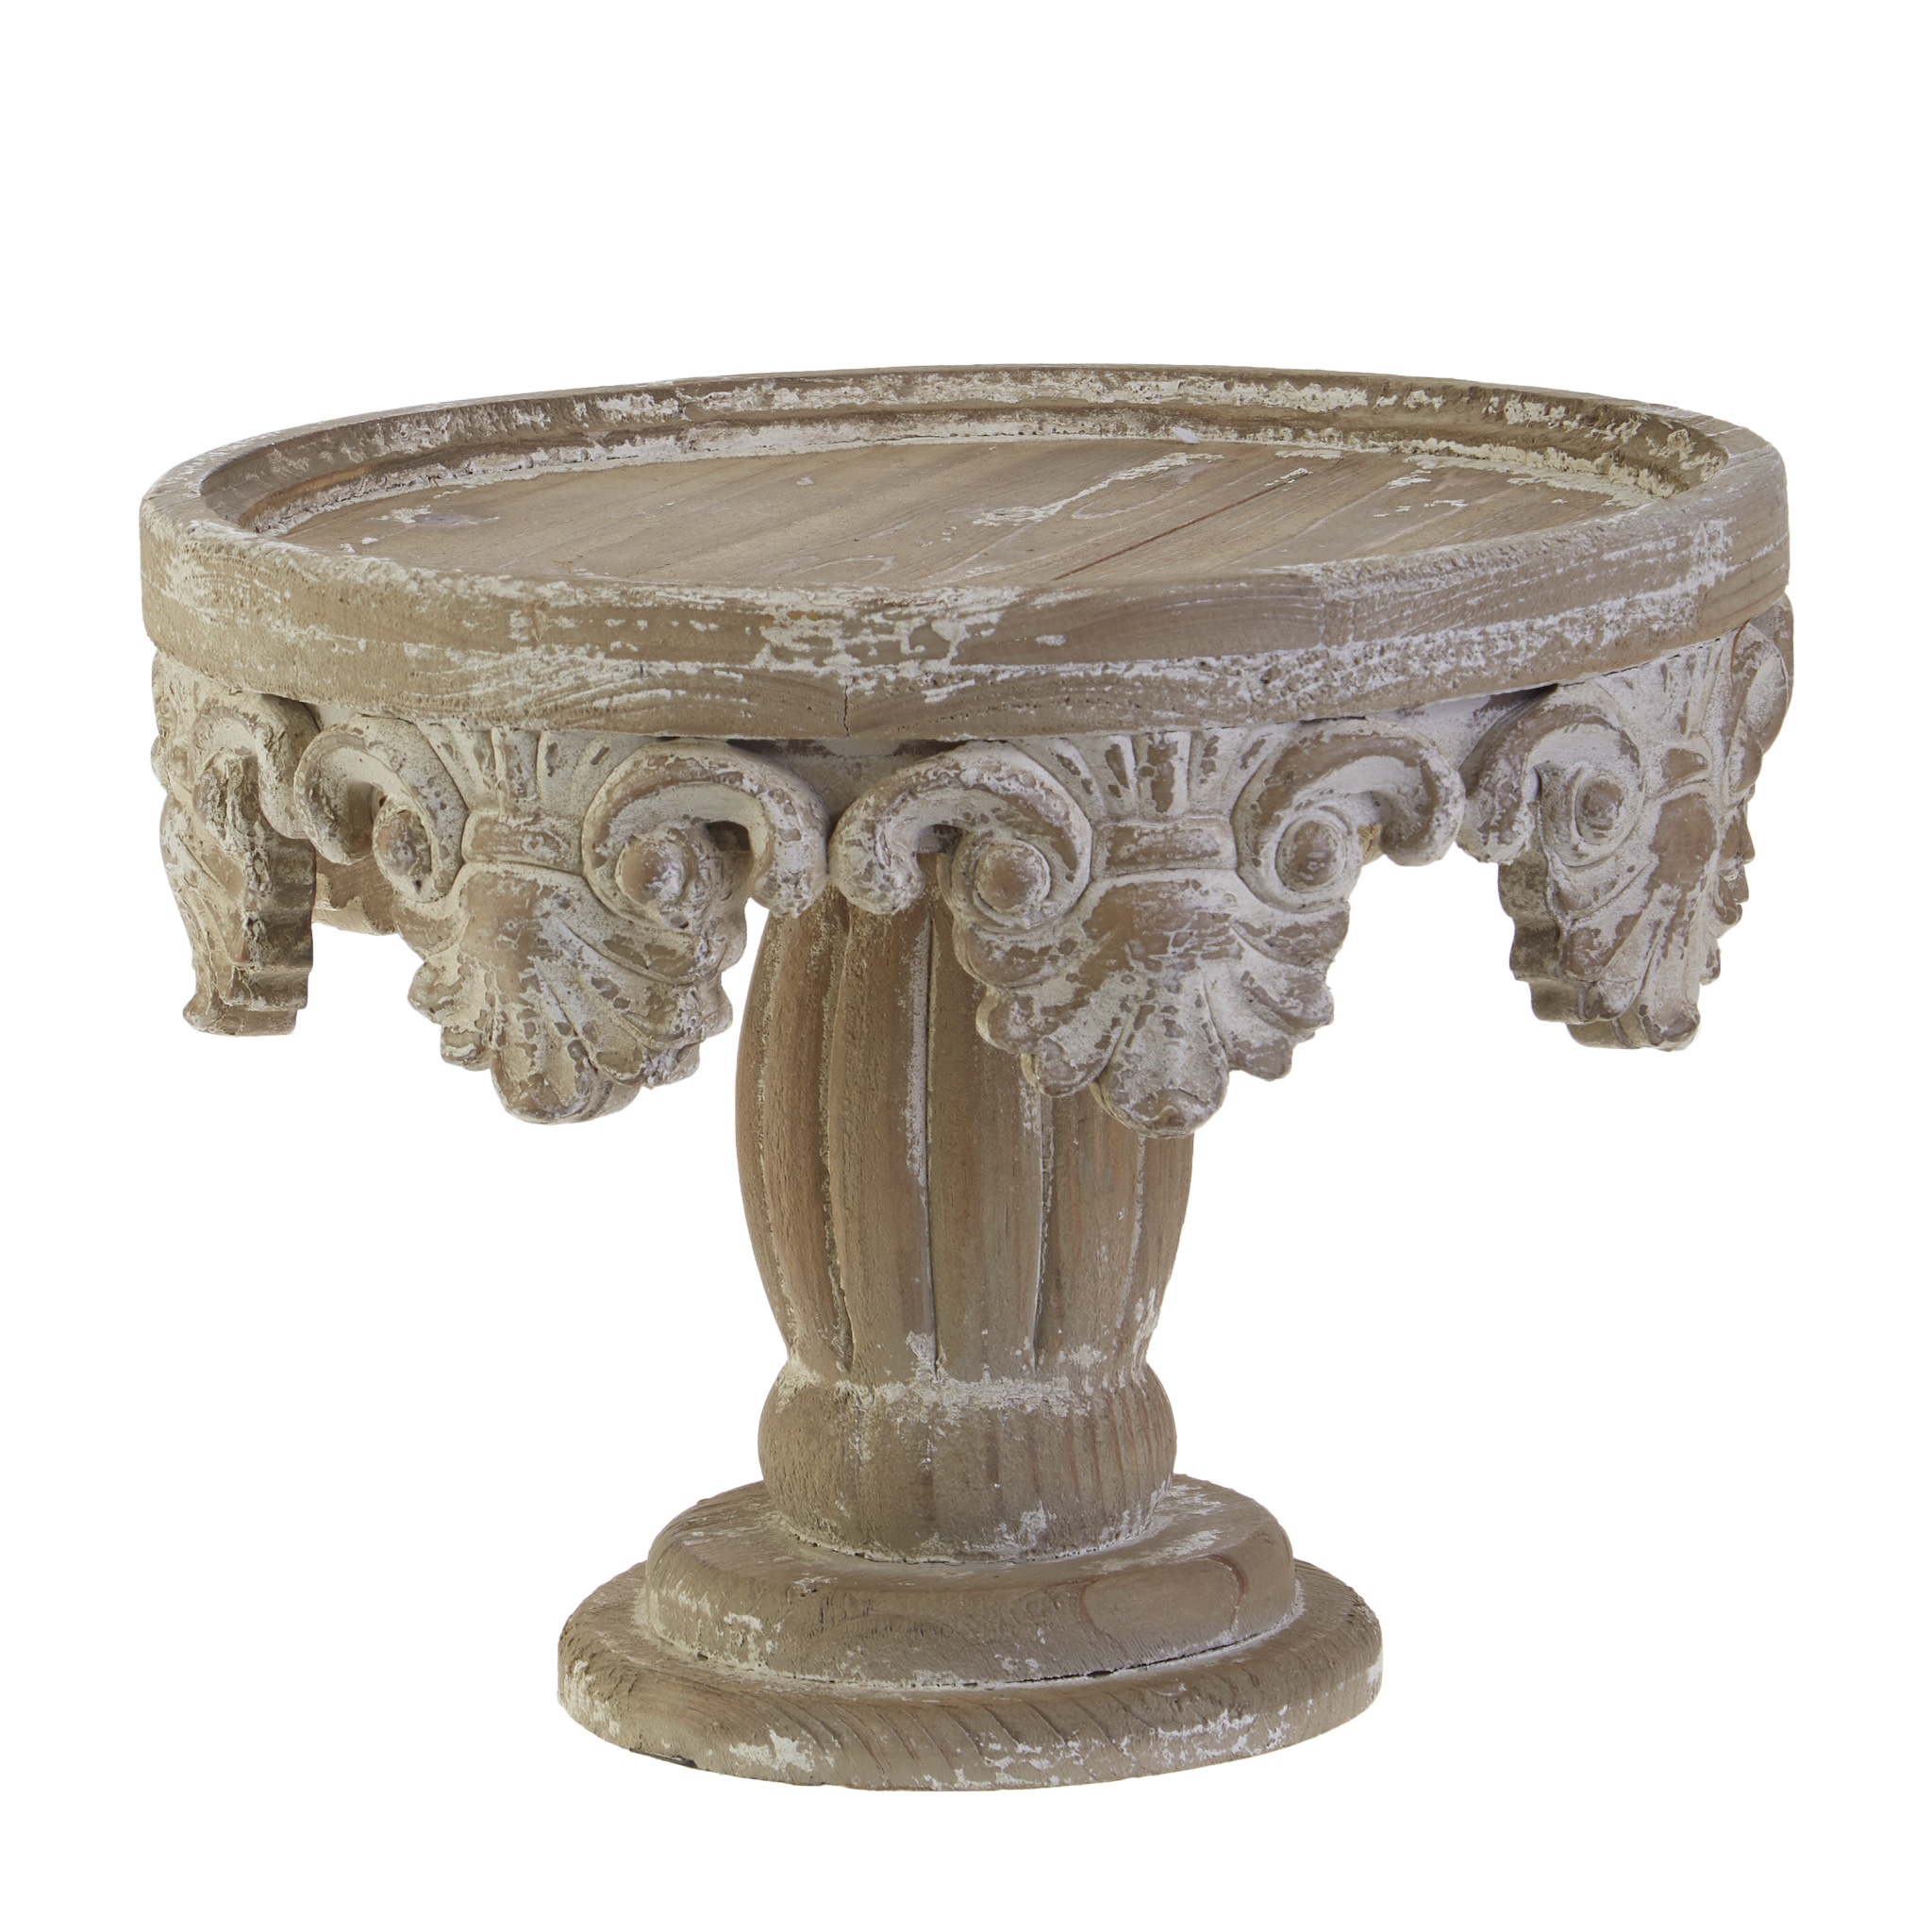 Distressed Wooden Pedestal Distressed Home Decor